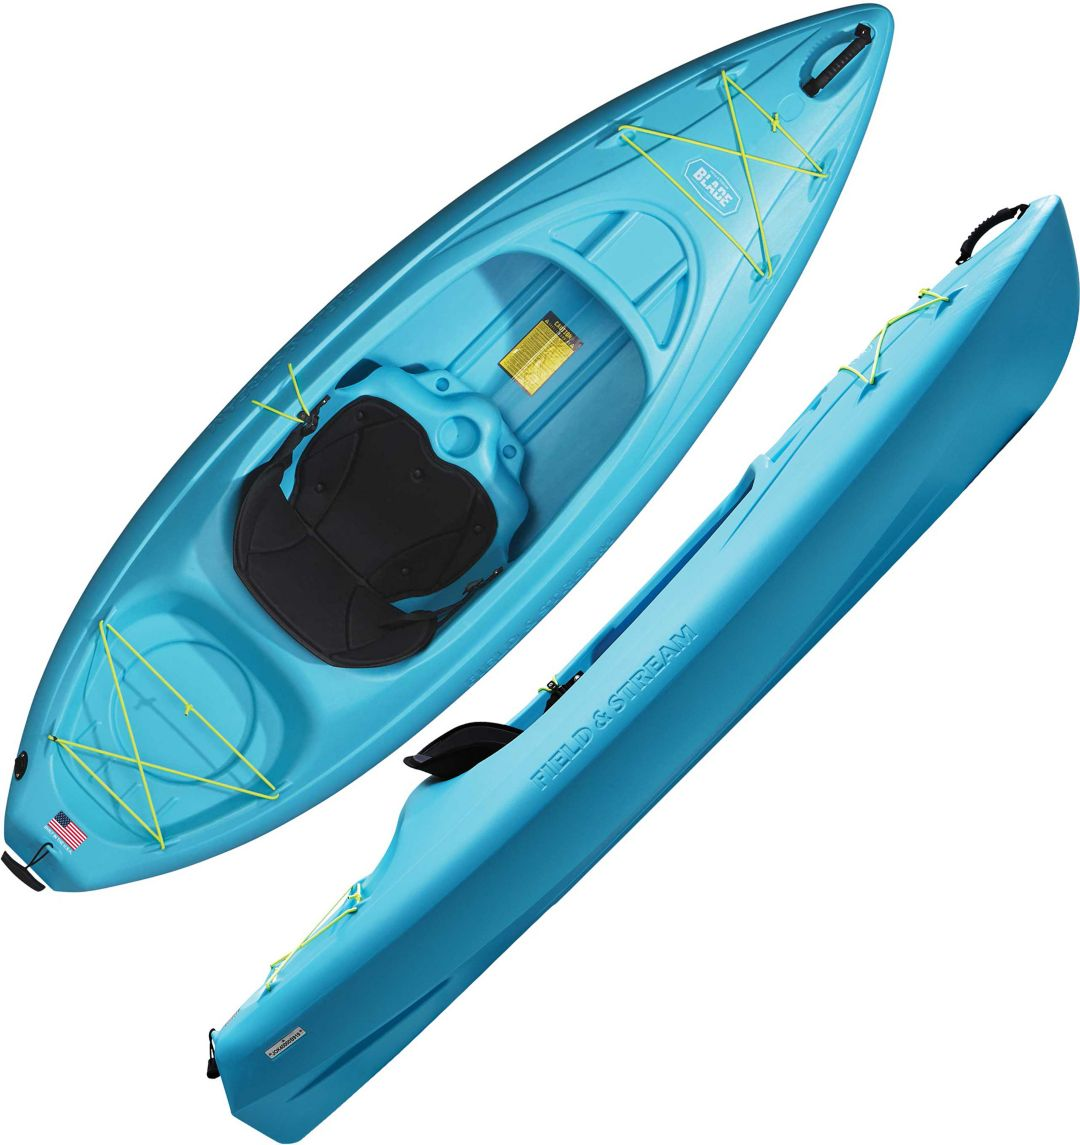 Field Stream Blade 80 Kayak Dicks Sporting Goods